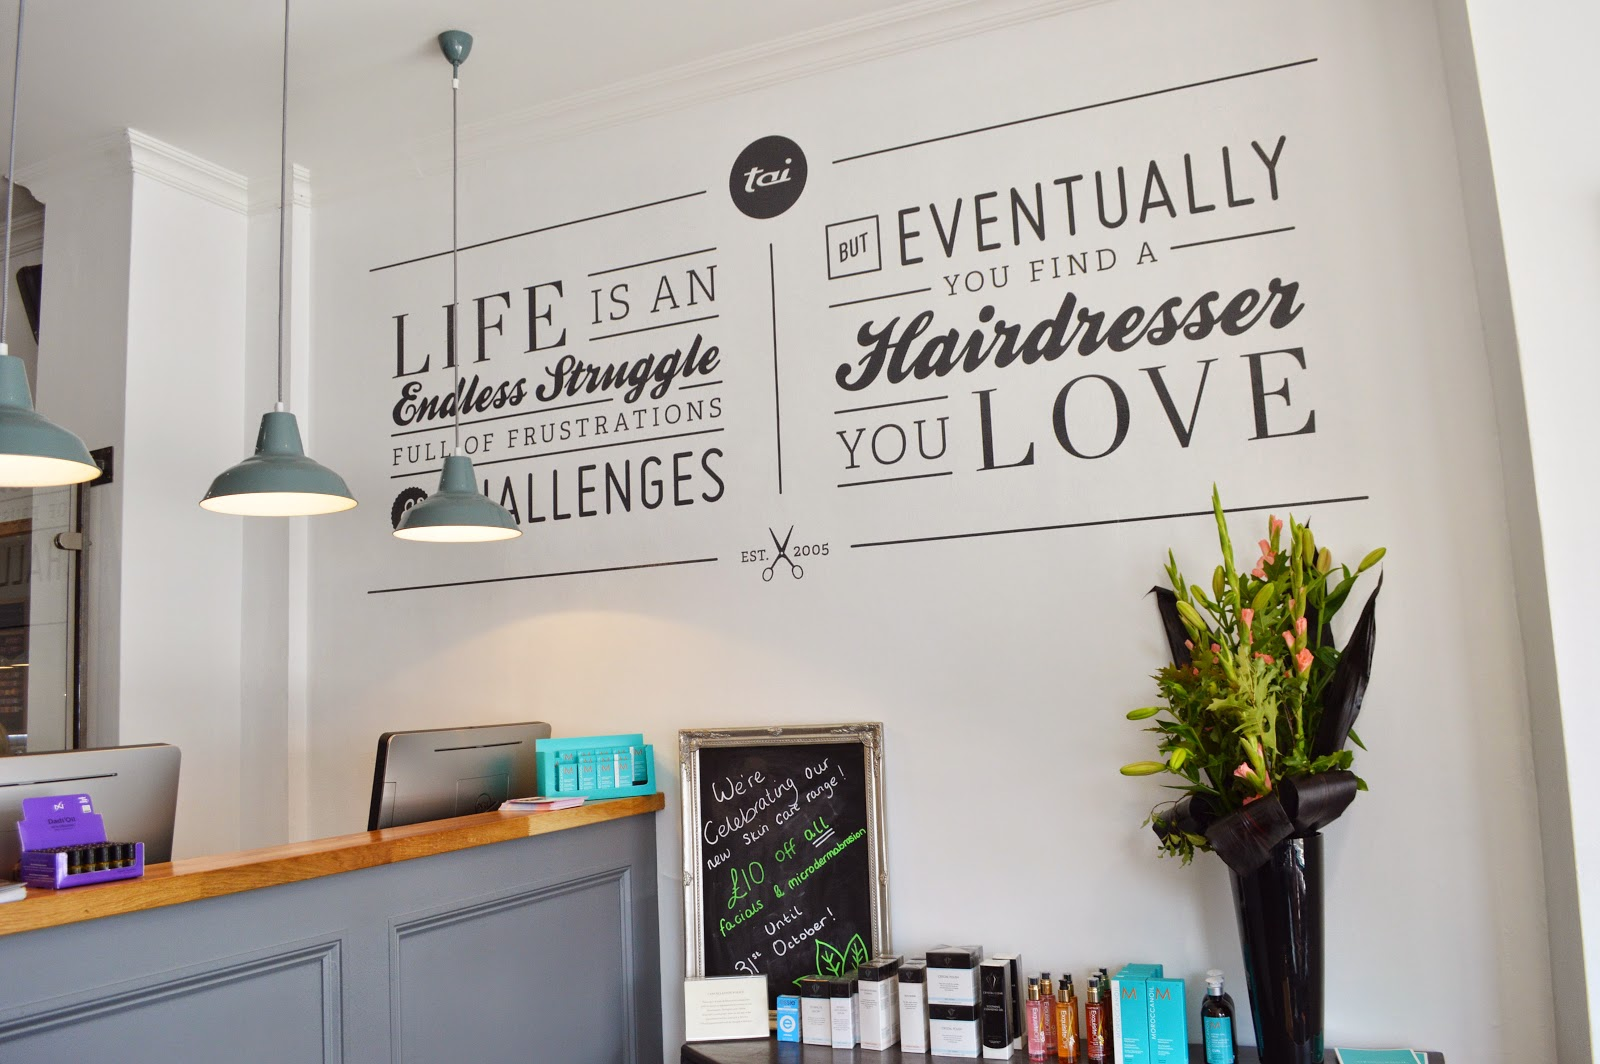 Tai Hair and Beauty Salon in Hove